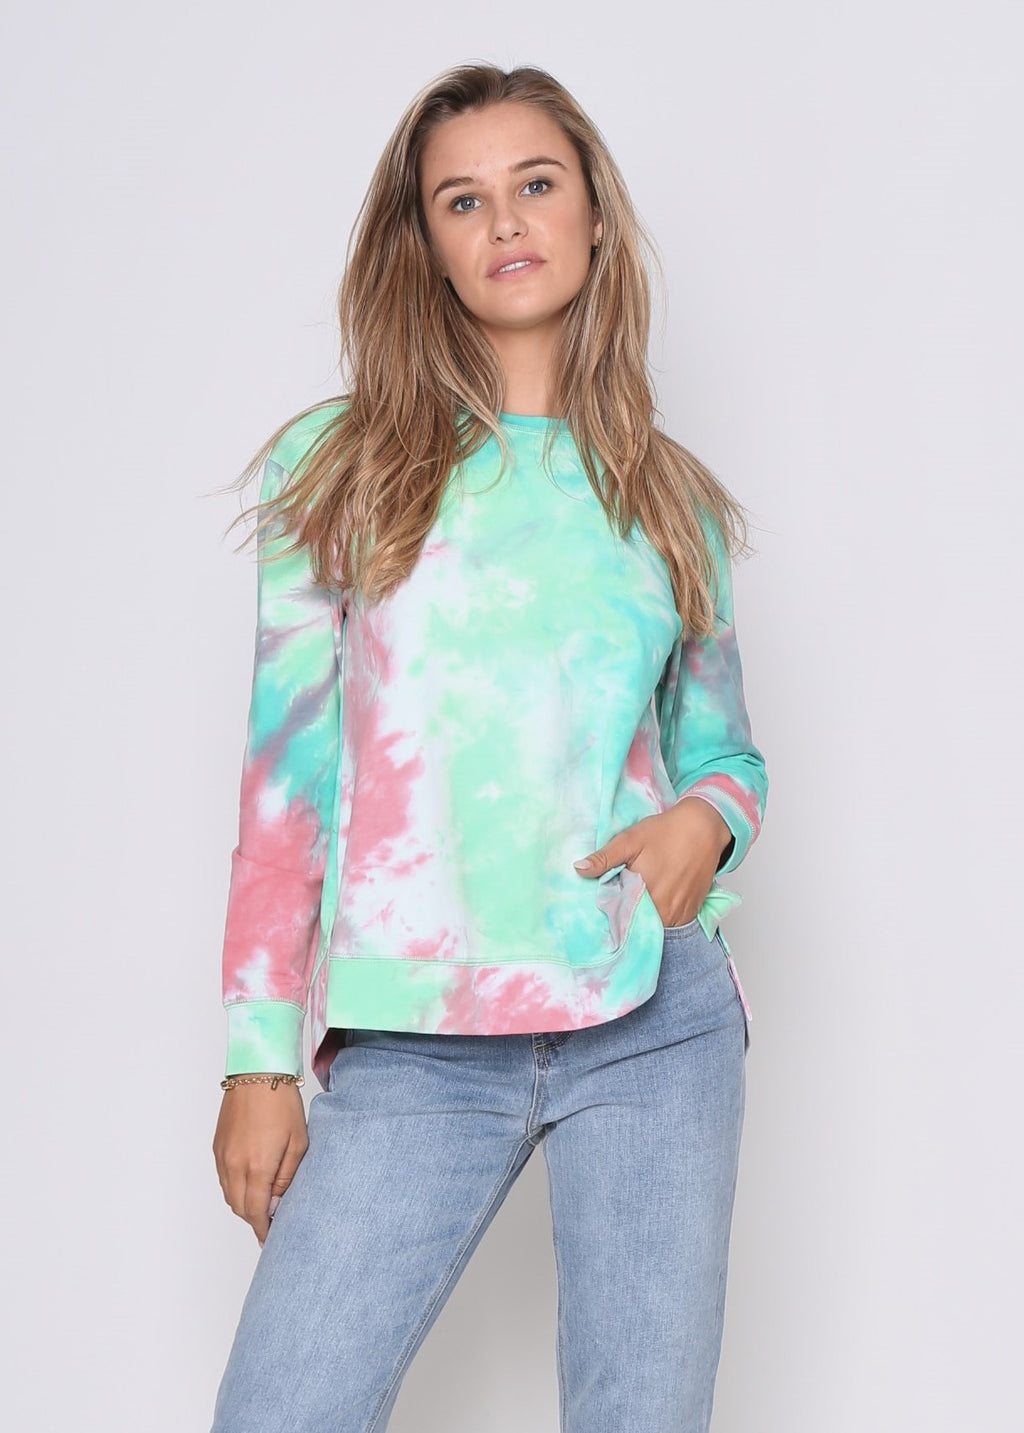 HARLEY SWEATER - GREEN/PINK TIE-DYE